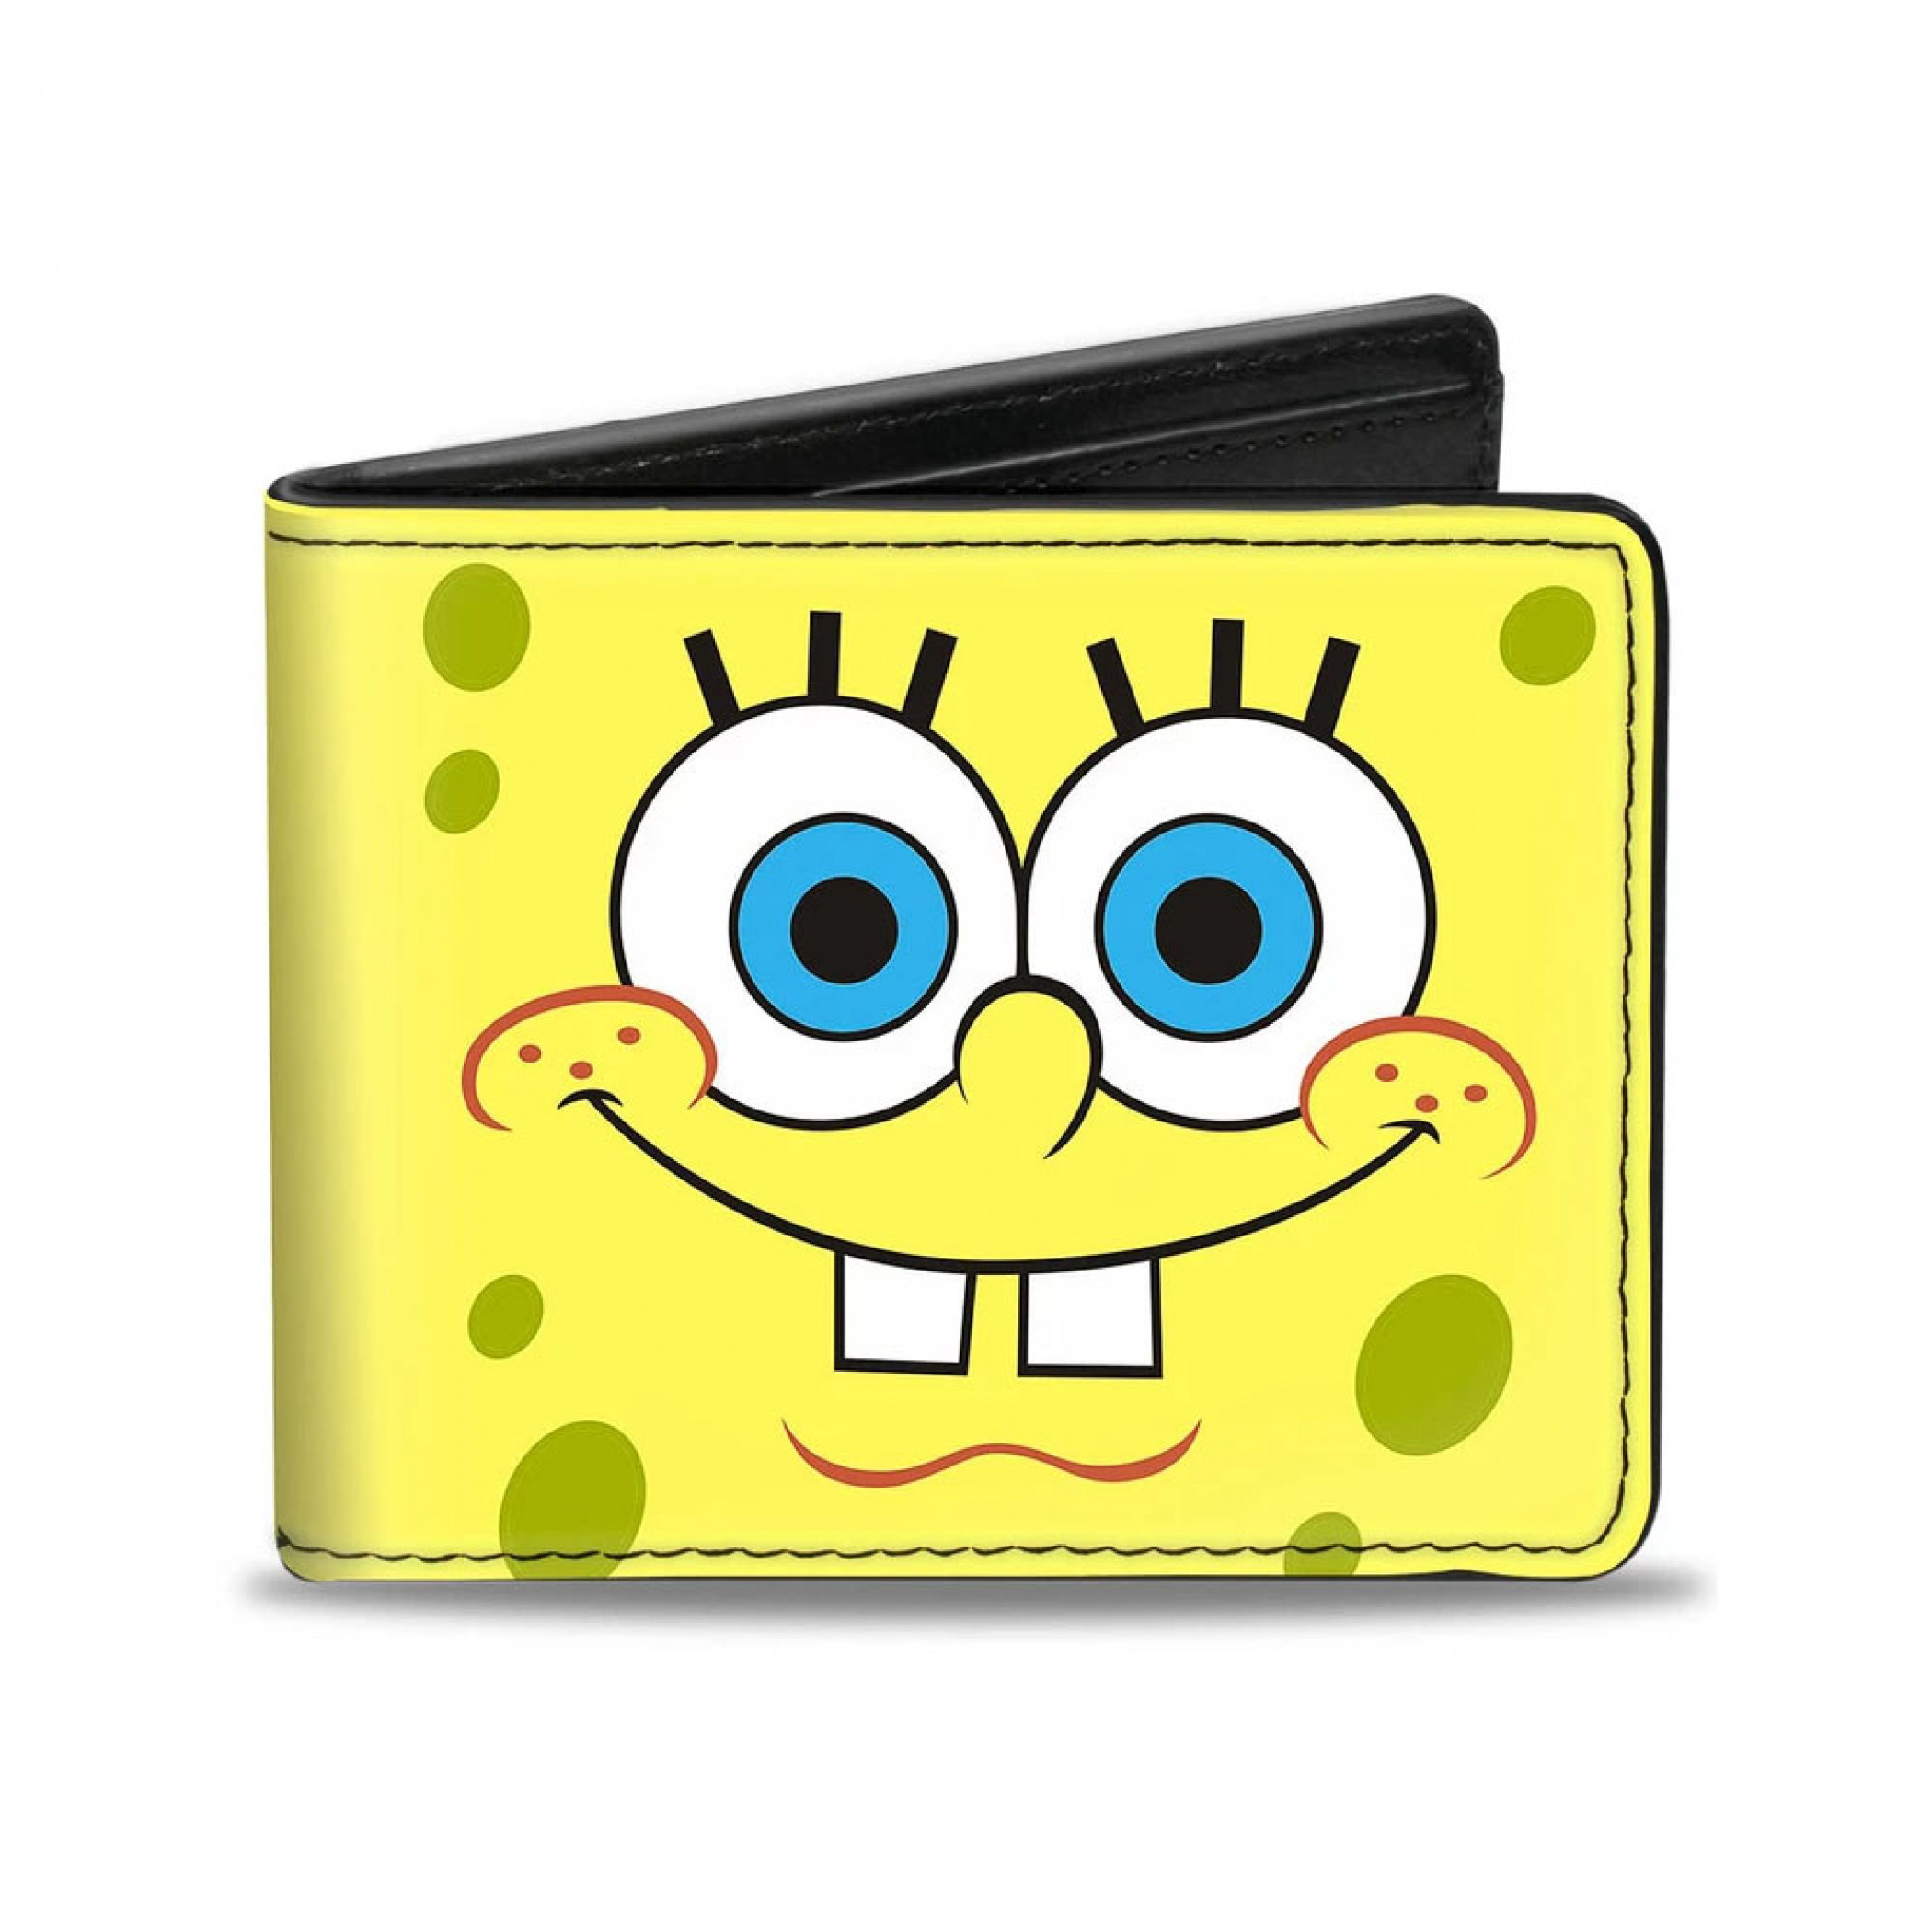 SpongeBob SquarePants Face Wallet